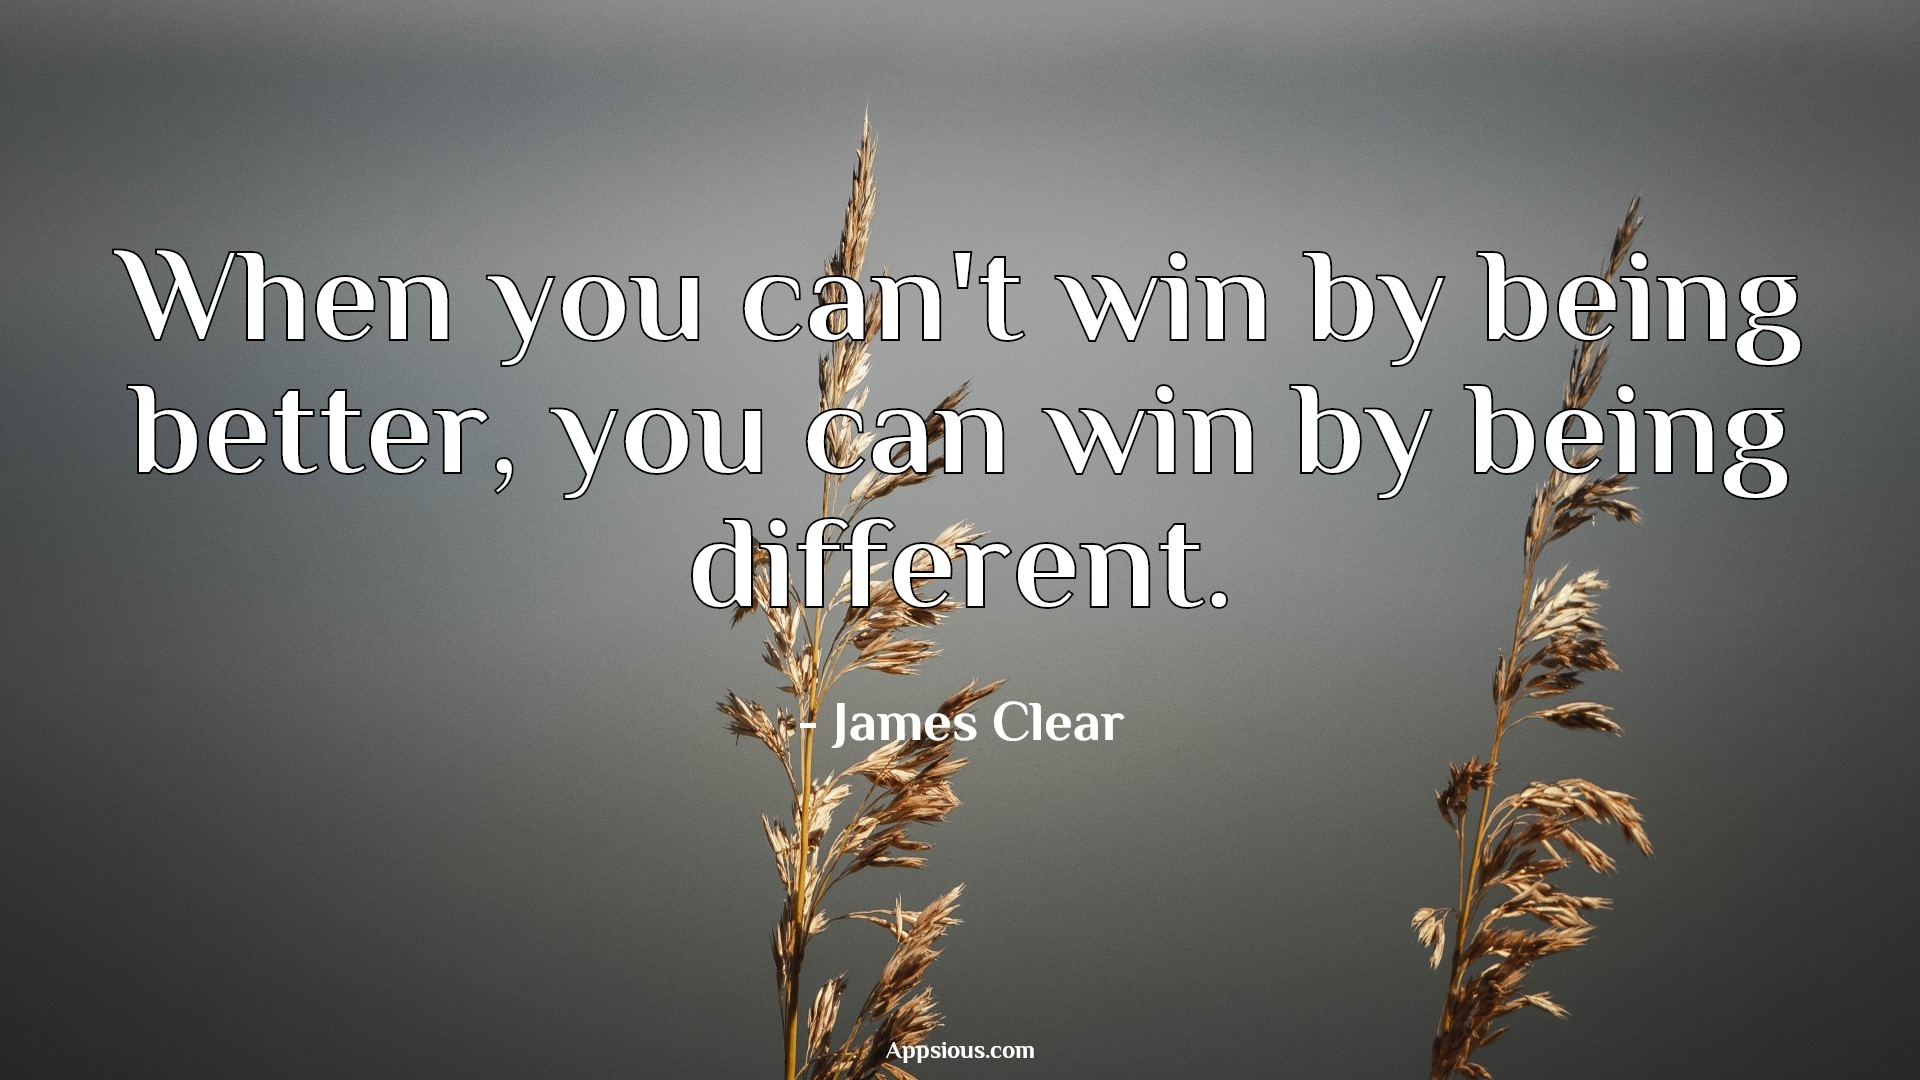 When you can't win by being better, you can win by being different.